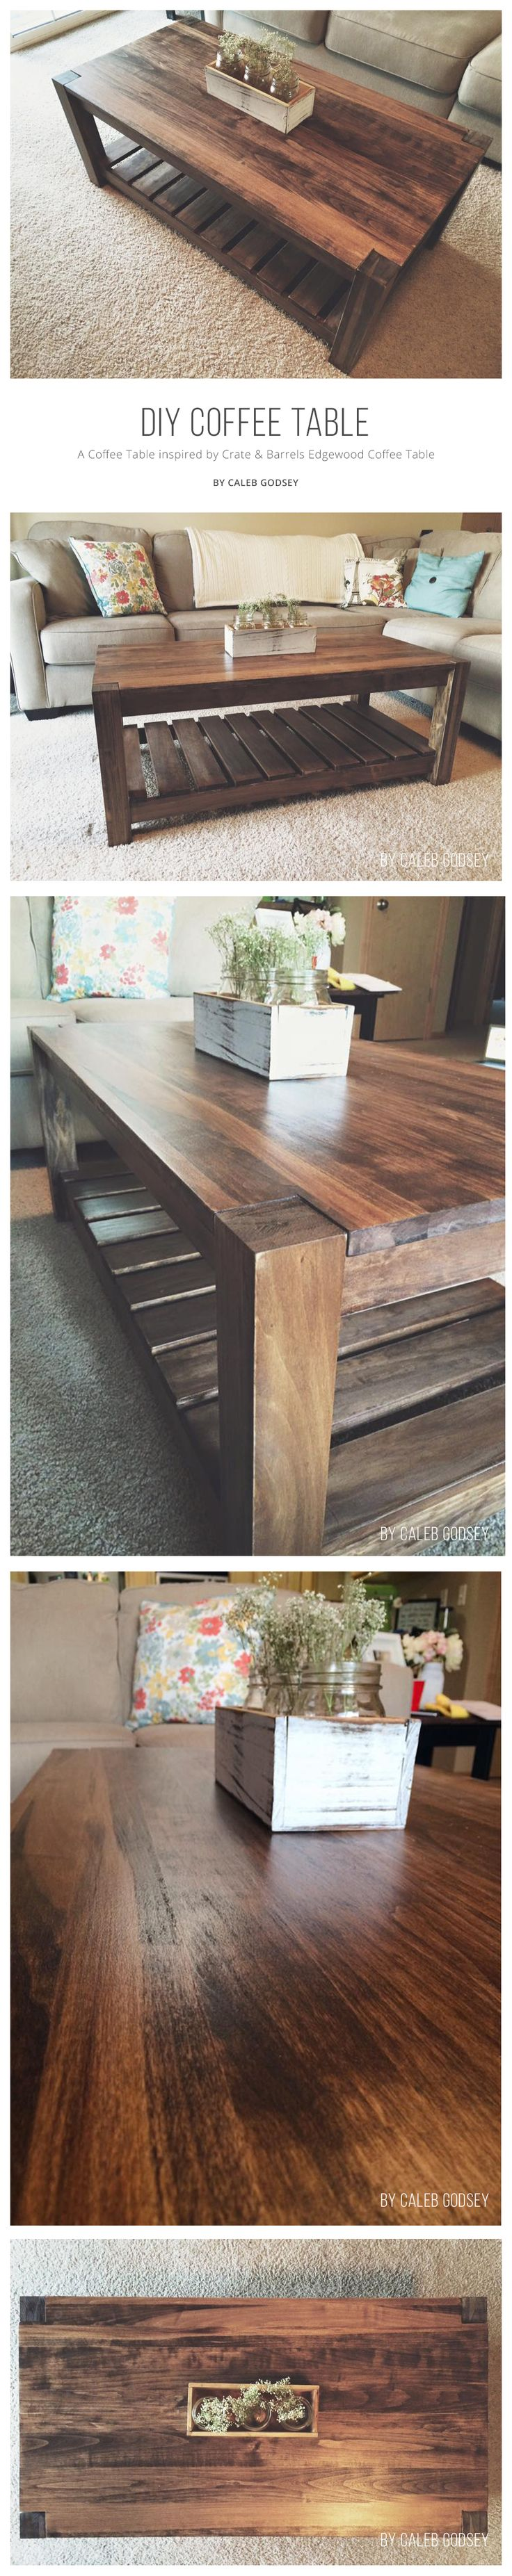 A beautiful aspen and pine diy coffee table inspired by Crate & Barrel s Edgewood Coffee Table